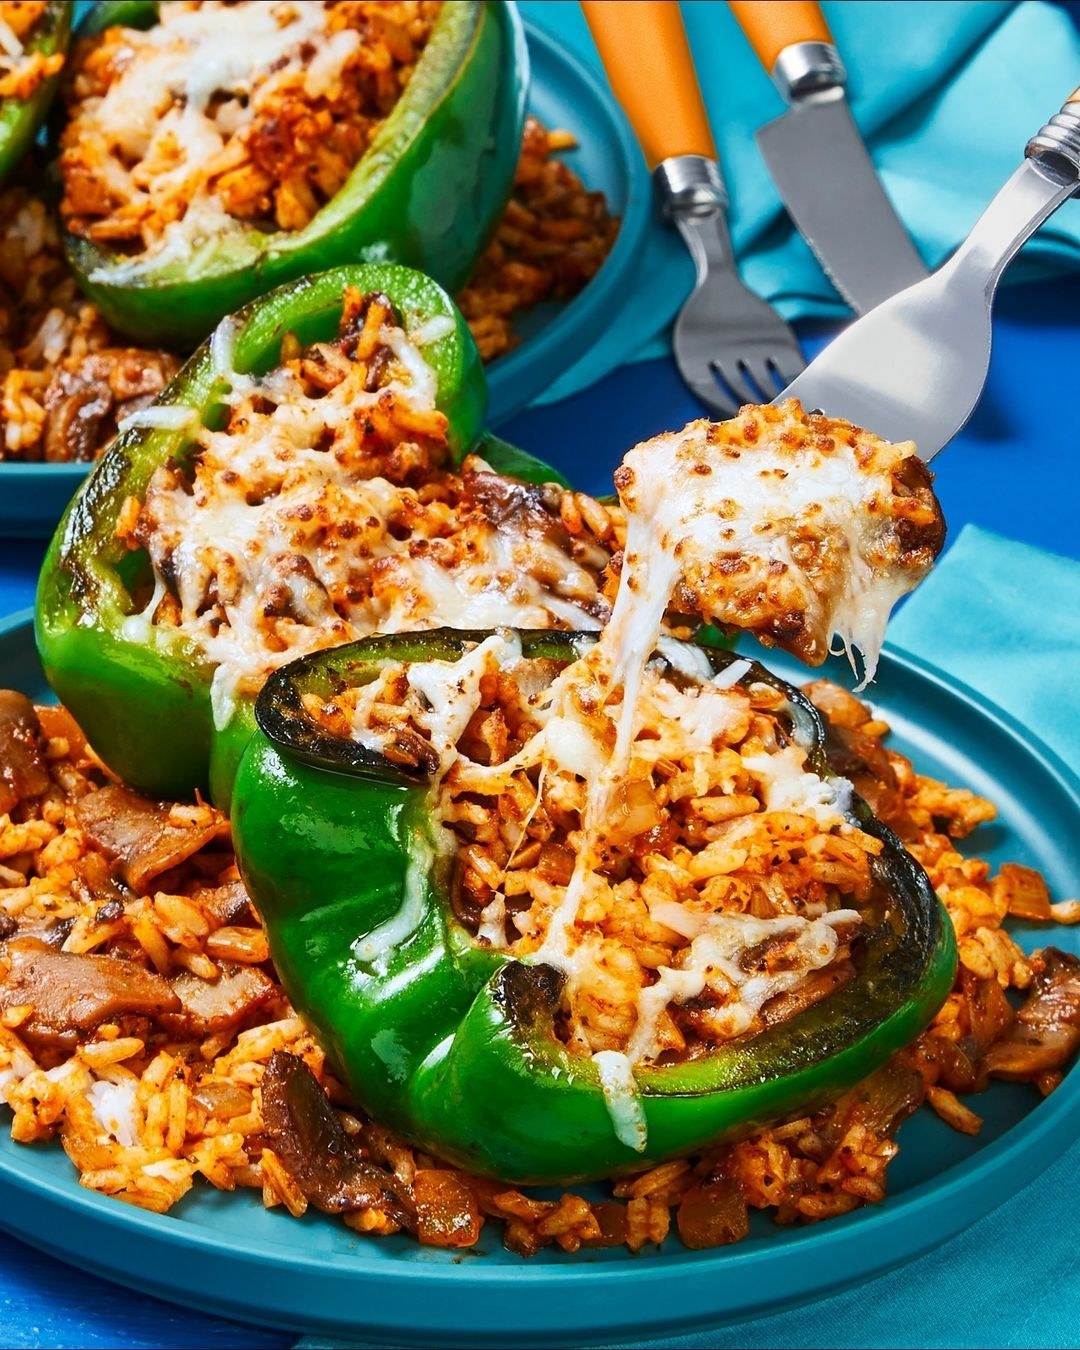 plate of stuffed peppers